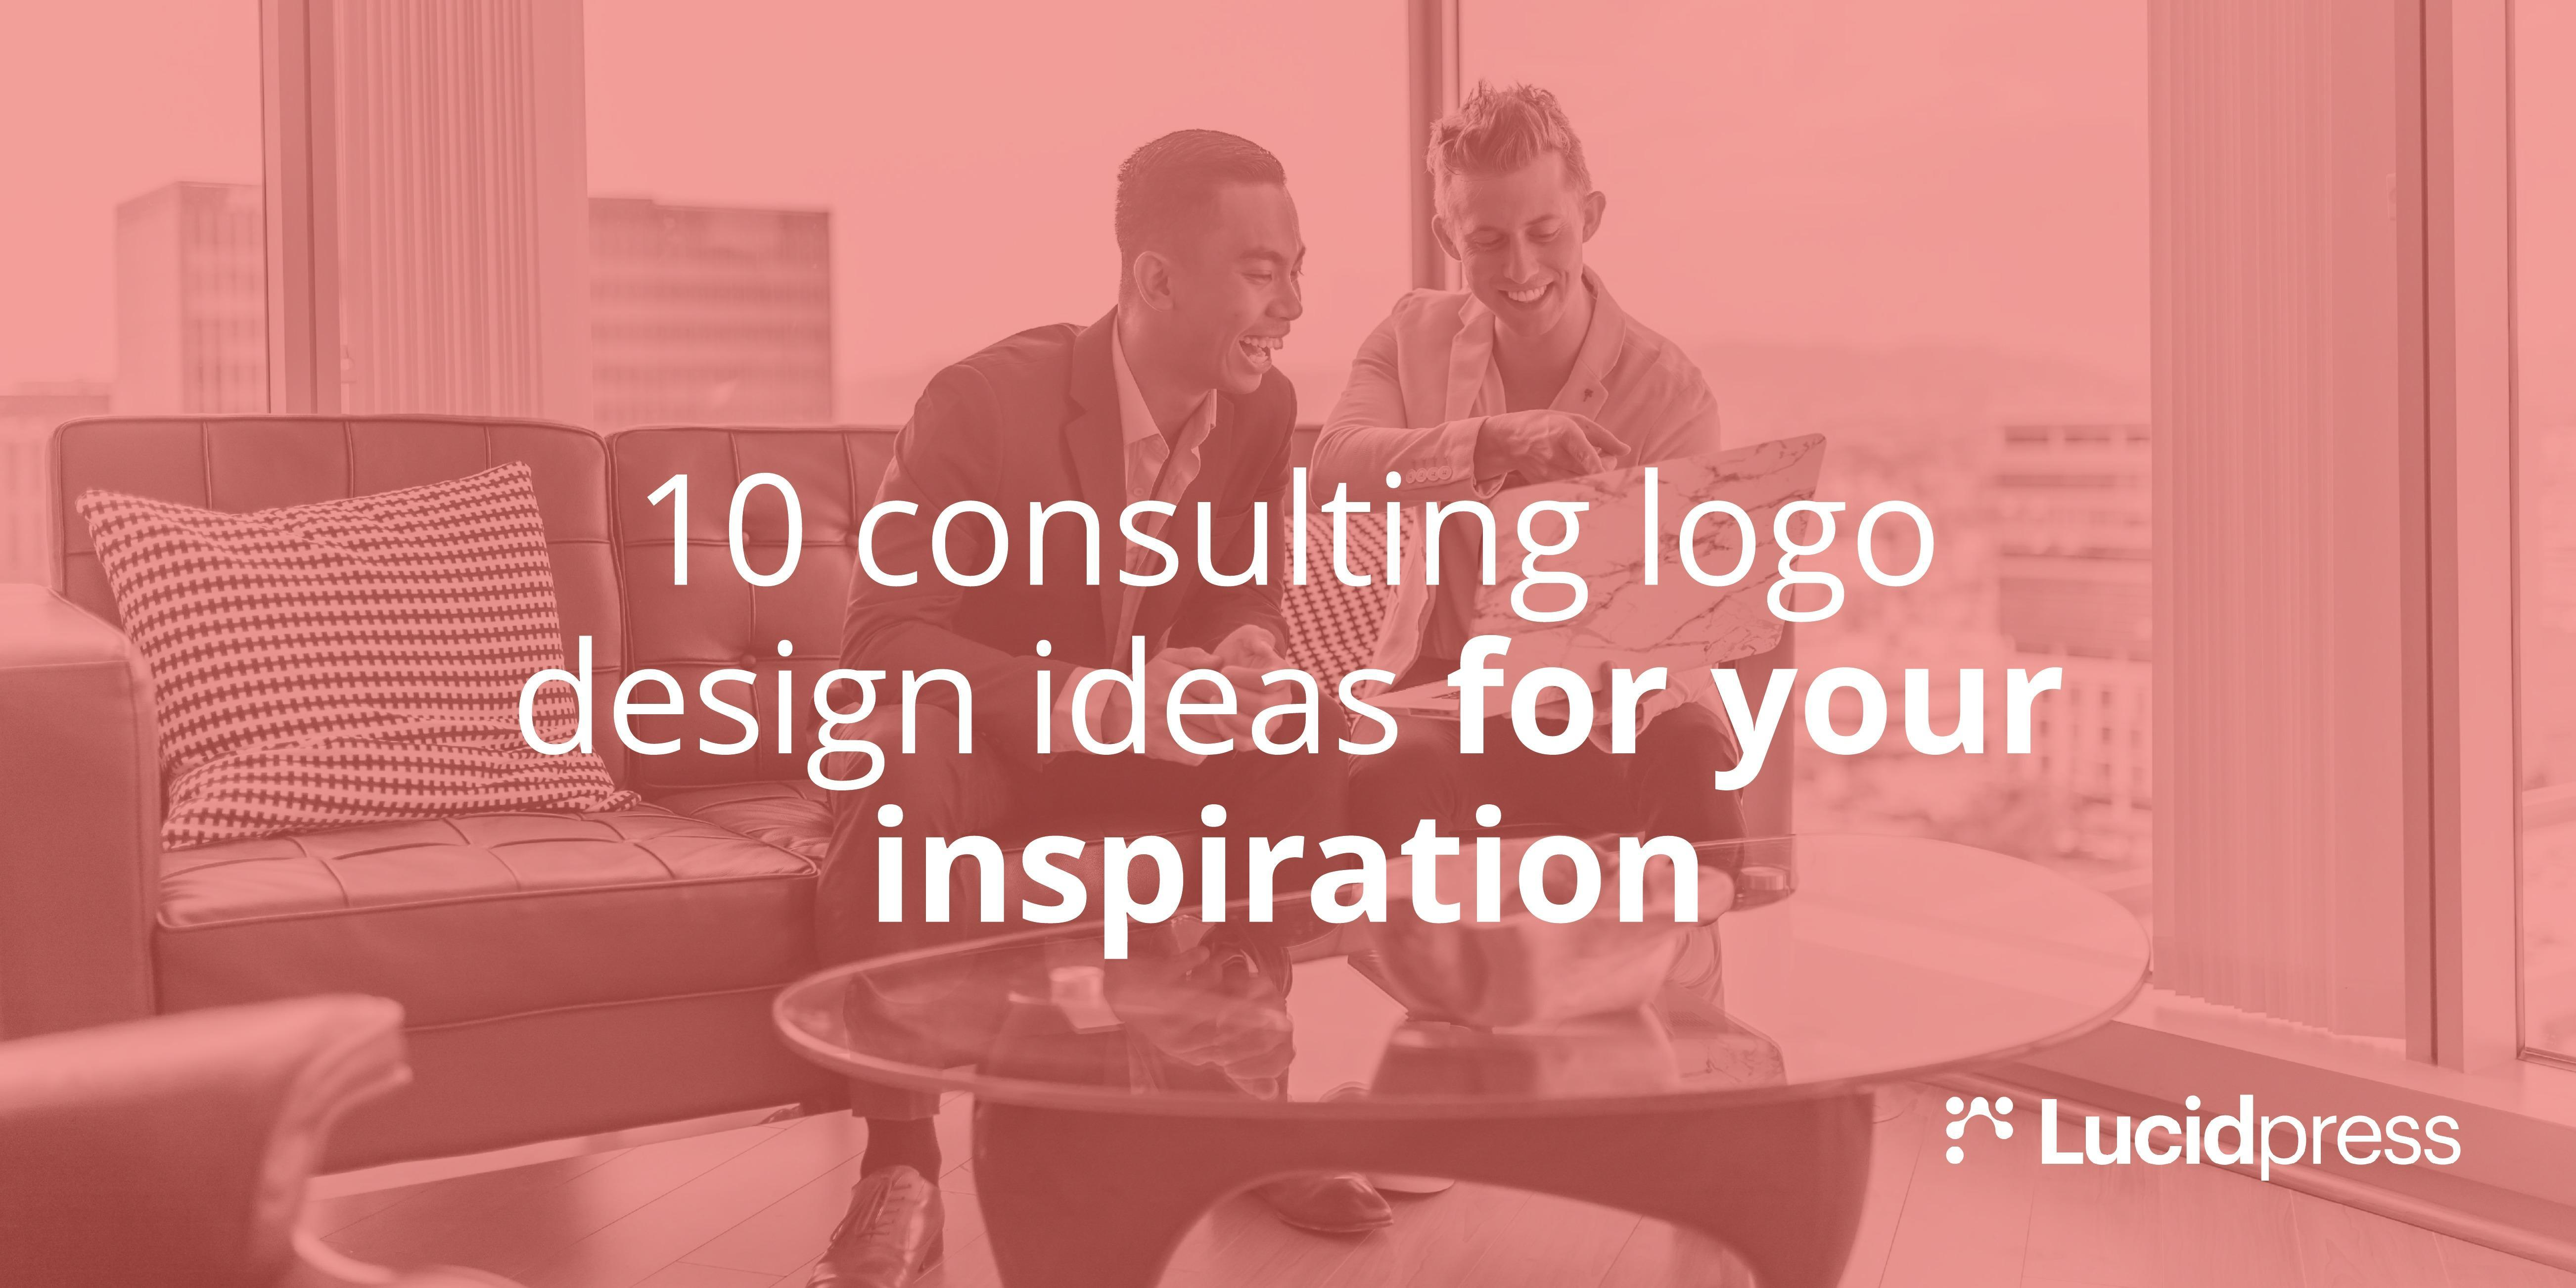 10 Consulting Logo Design Ideas for Your Inspiration ...